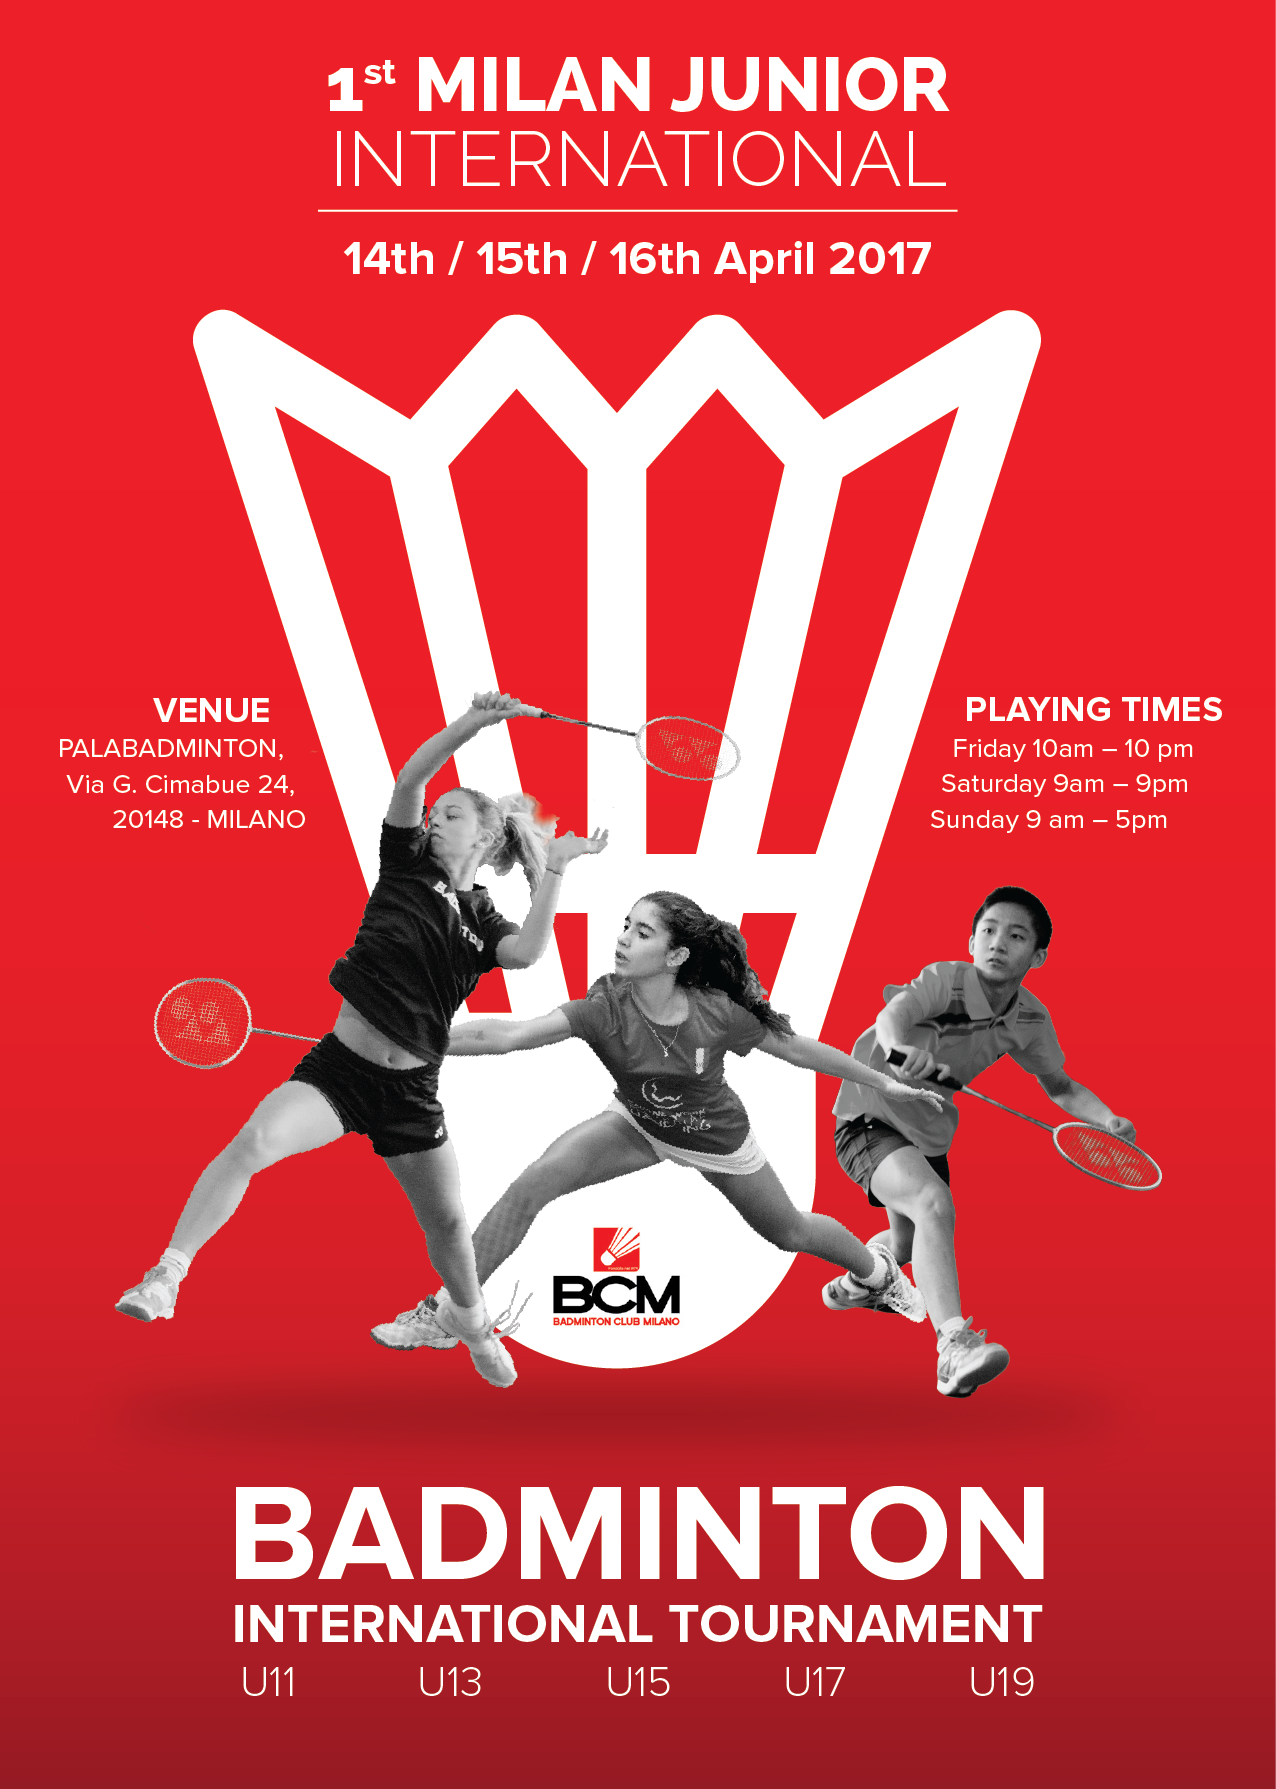 badminton International youth and junior tournament